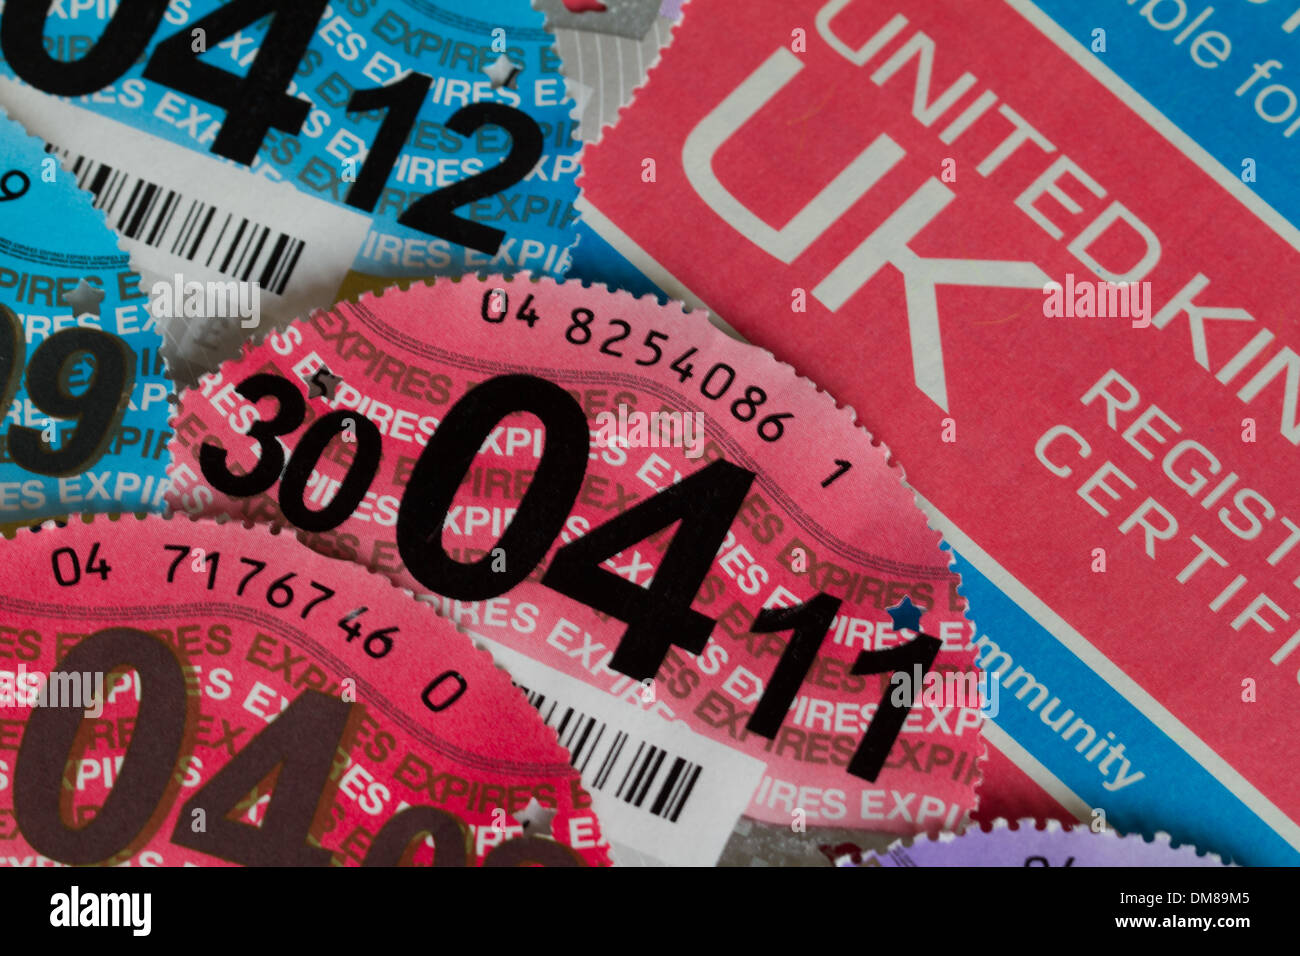 Car Registration Certificate with Various Car Tax Discs 2007 to 2013 Stock Photo